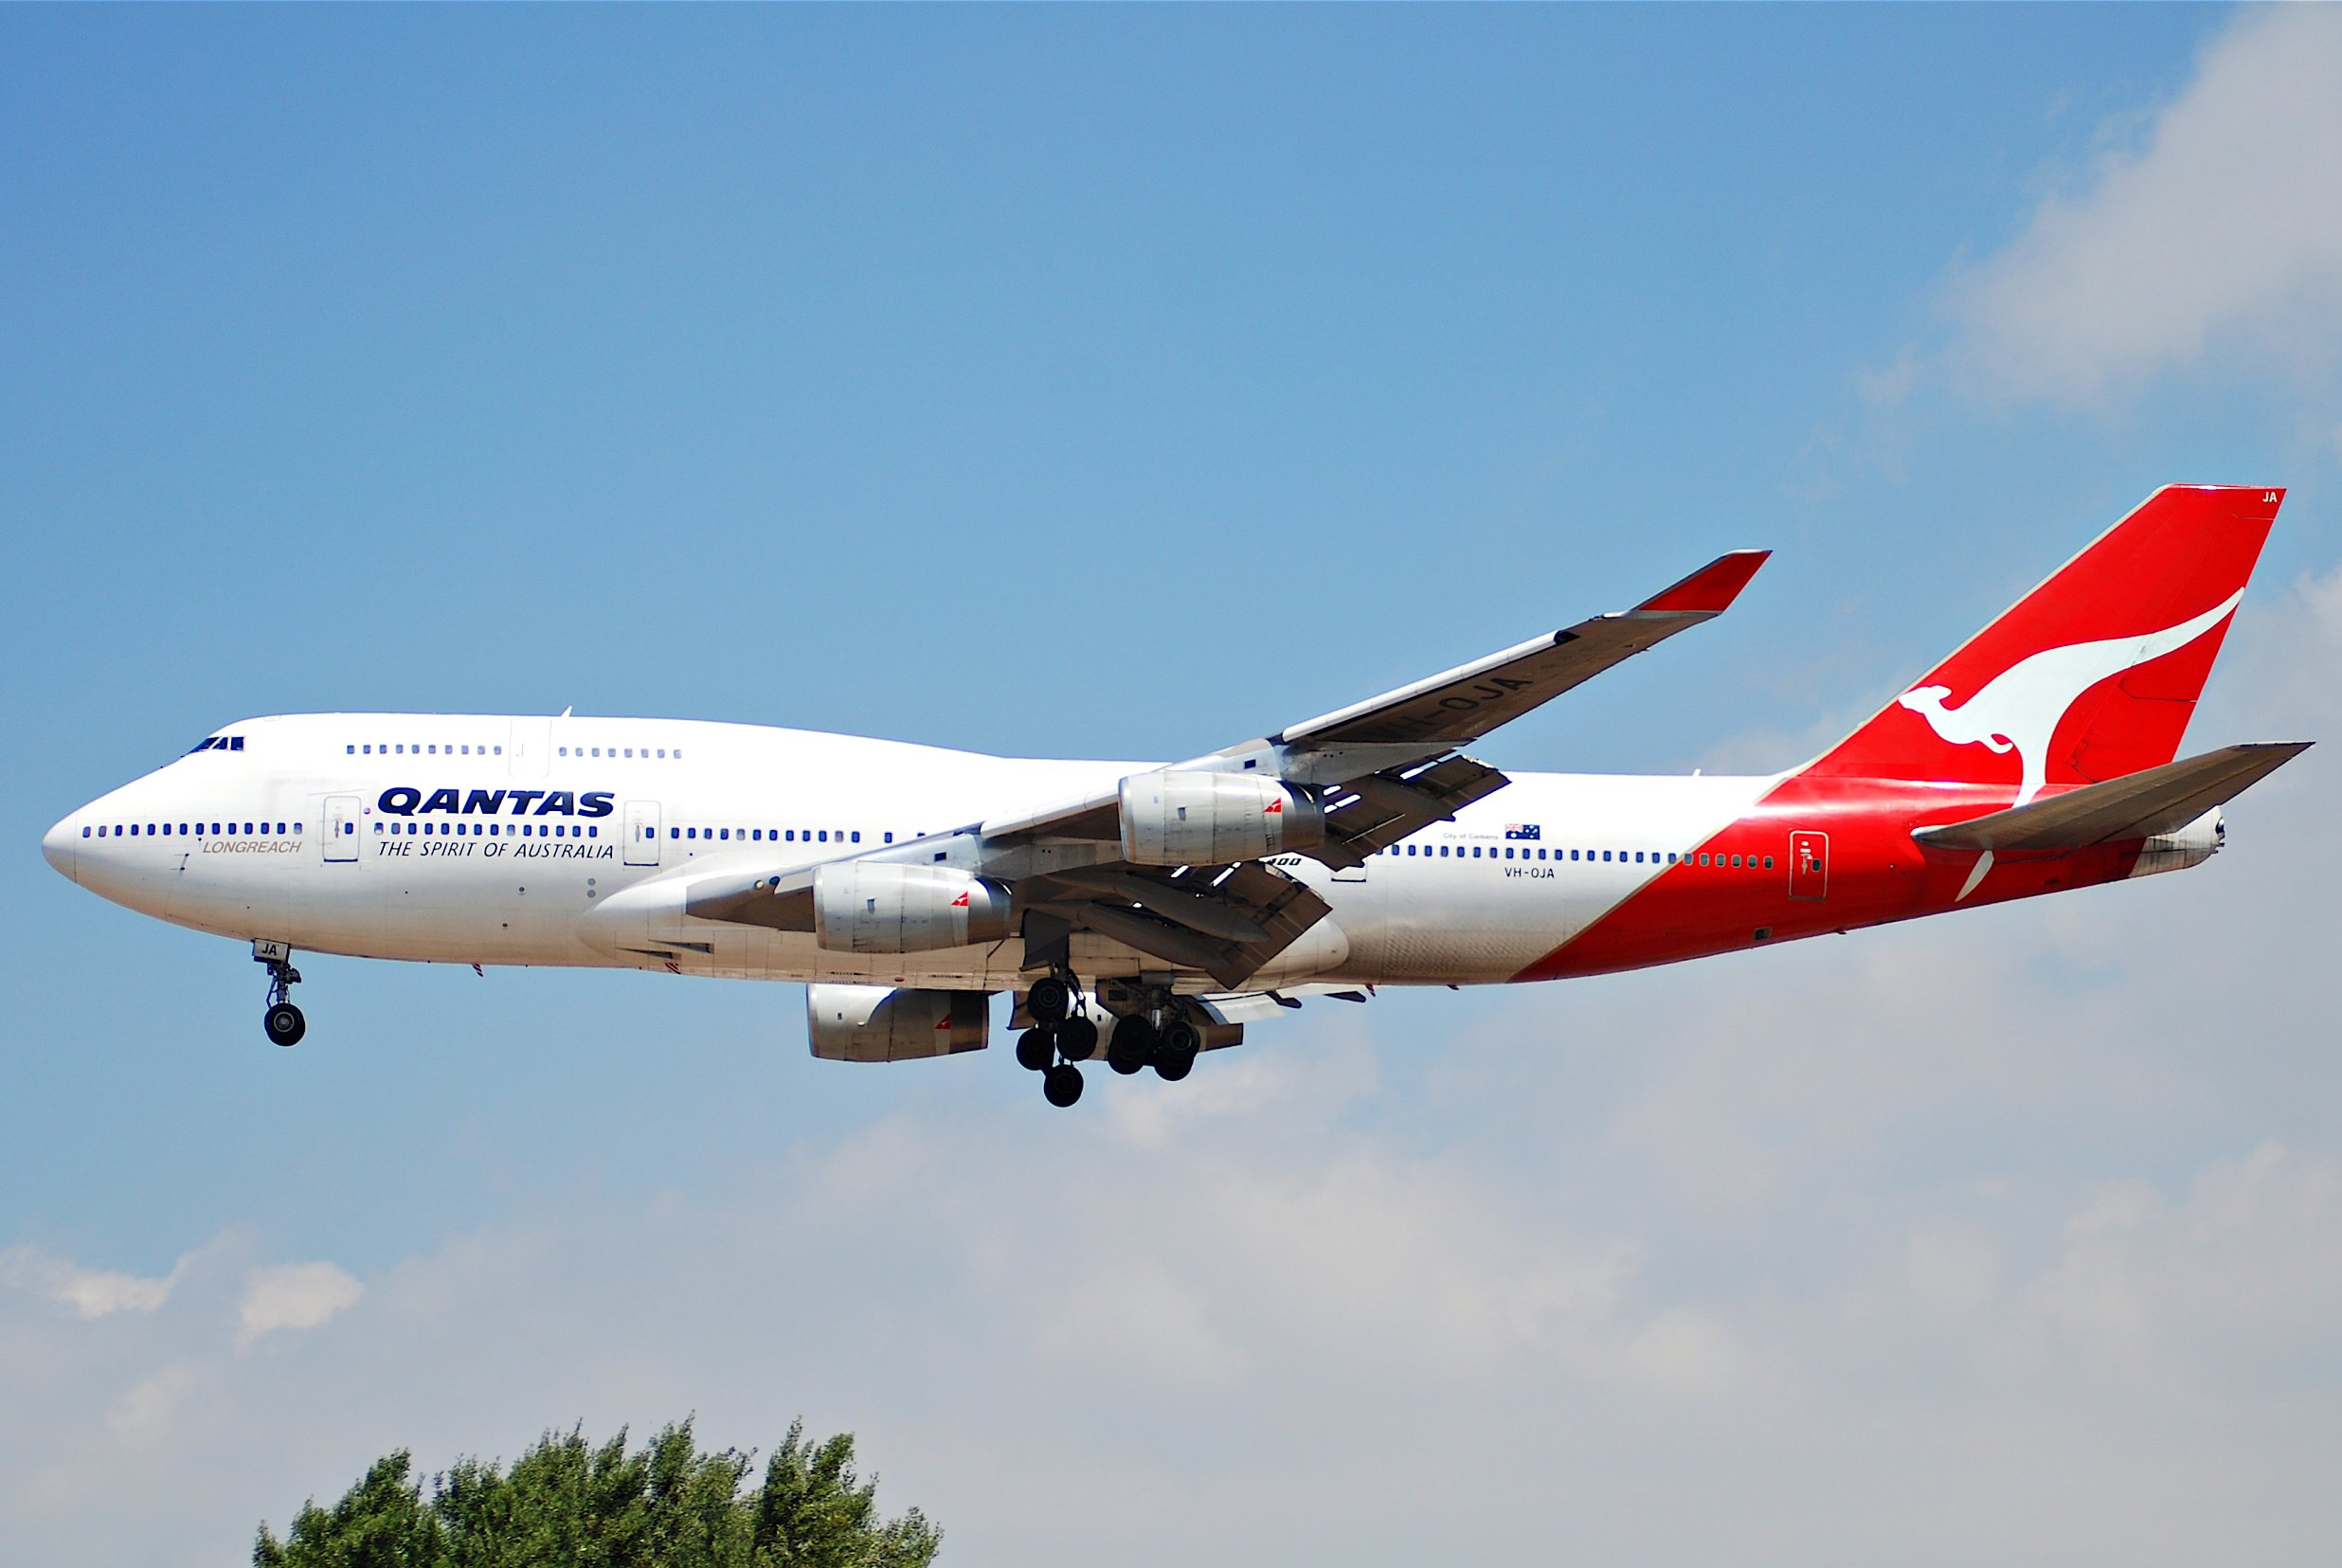 Business Strategy & Analysis – Qantas Airlines